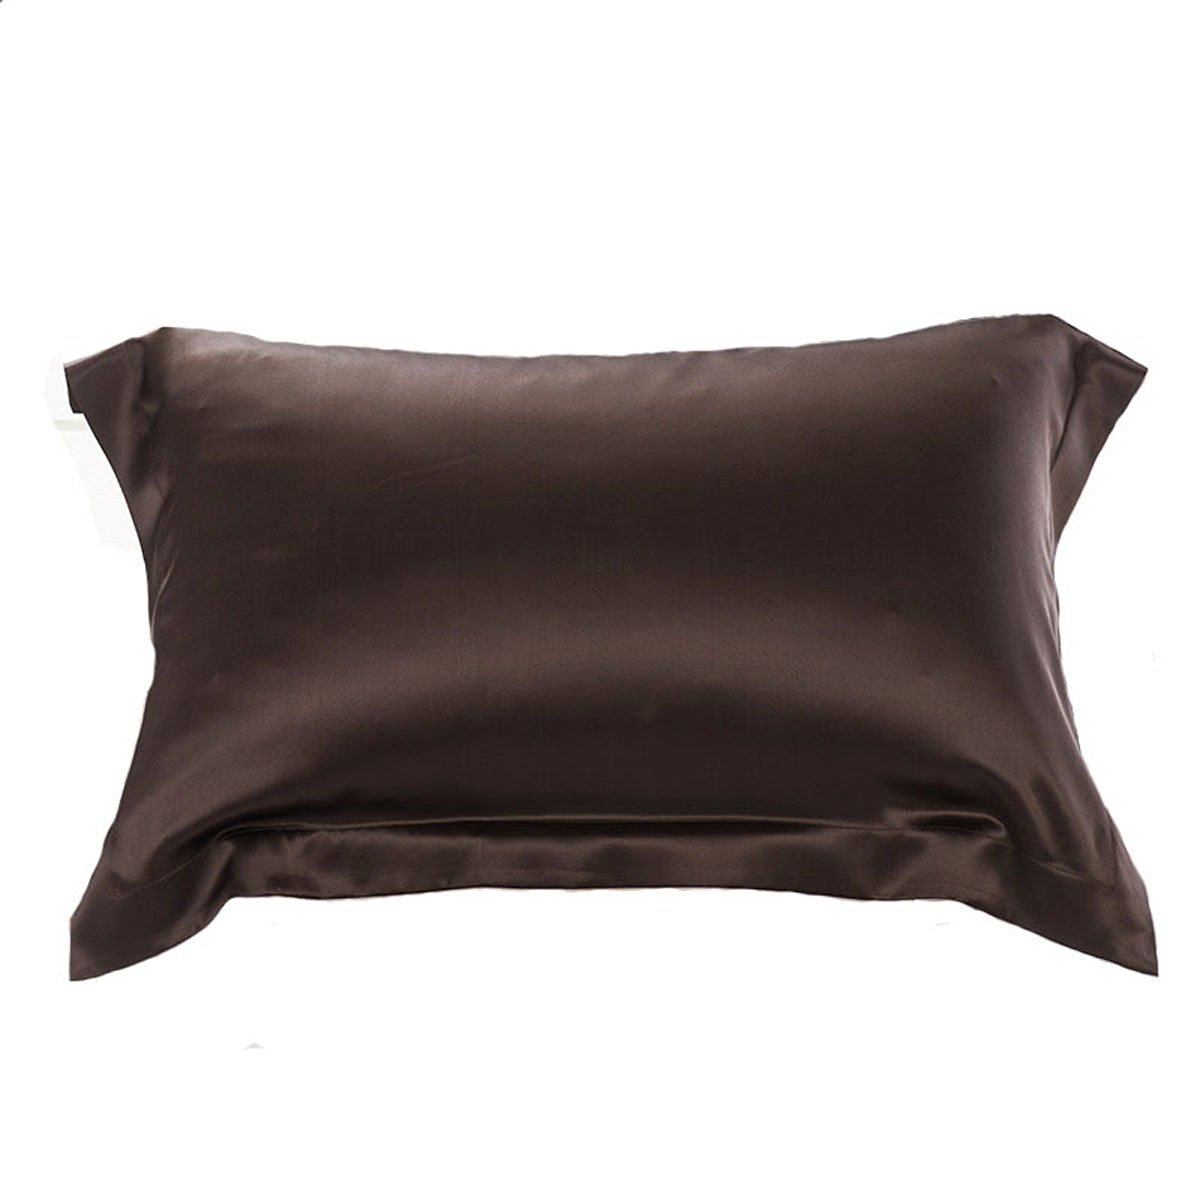 OOSILK 100% Organic Mulberry Silk Pillowcase Cover Long Standard for Wrinkle, 1pc (King, Chocolate)